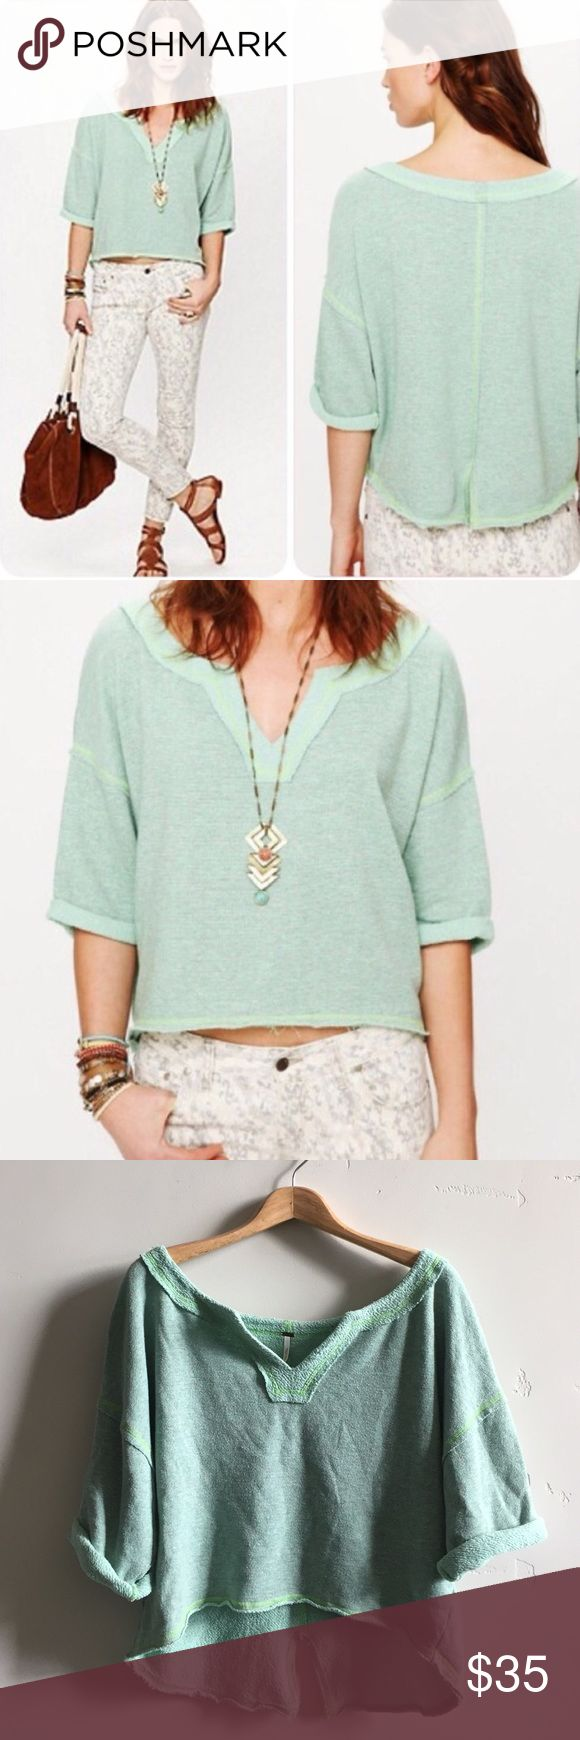 Free People Cropped Teal Sweatshirt Speckled mint green, slouchy and oversized terry top. Dolman cuffed sleeves, split neckline, cropped at waist, raw edges and slit at bottom back.  Preloved.  No rips, tears or stains.  In great, gently used condition. Free People Tops